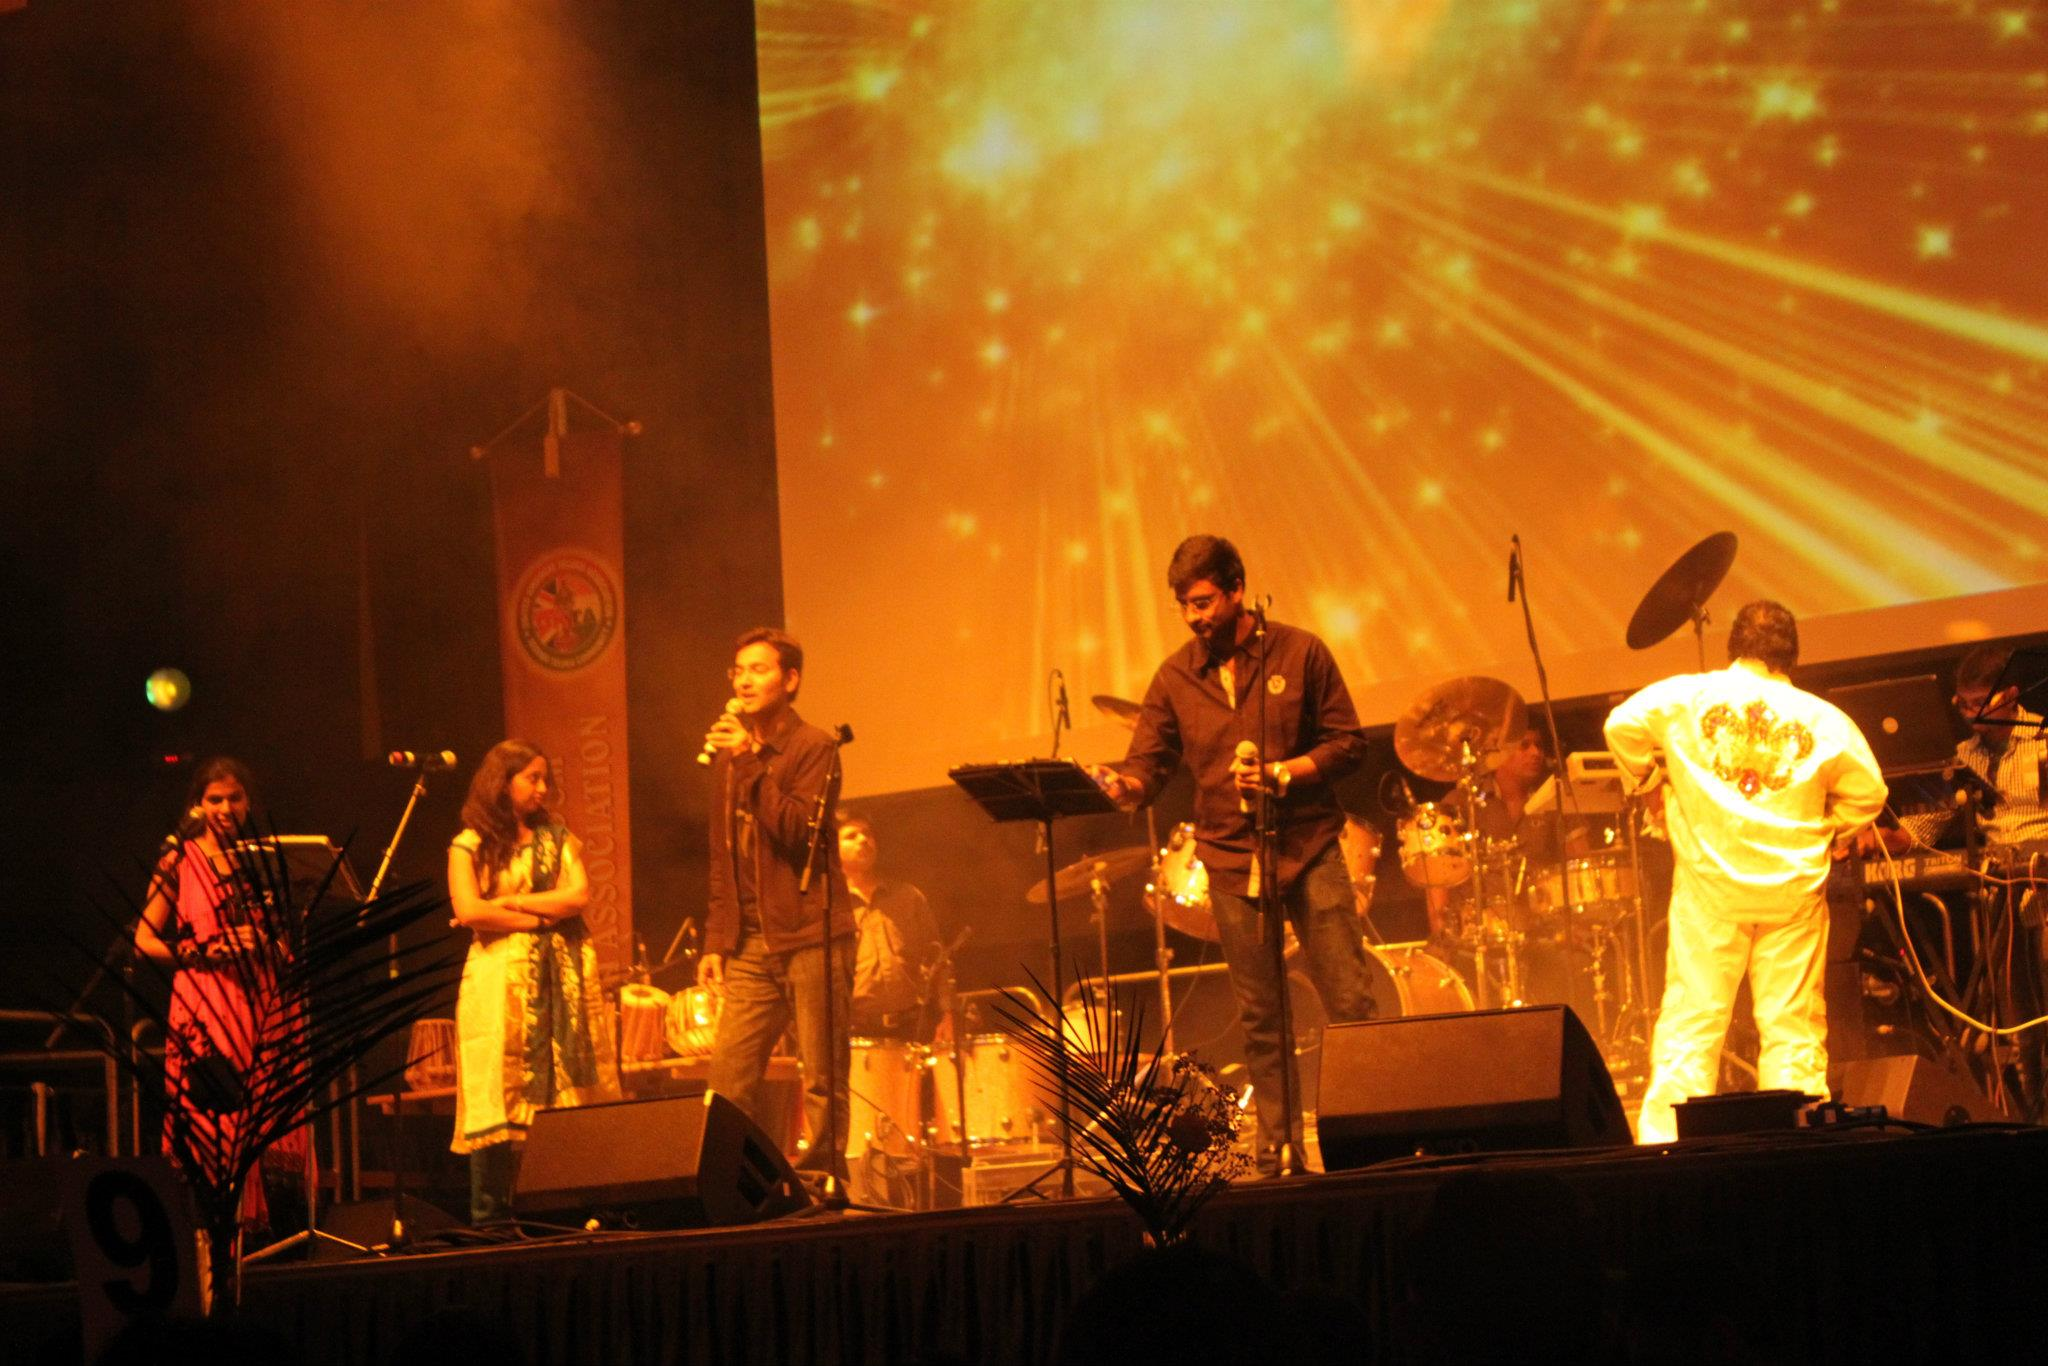 annual day 2012 with mega star chiranjeevi & mani sharma @troxy theatre